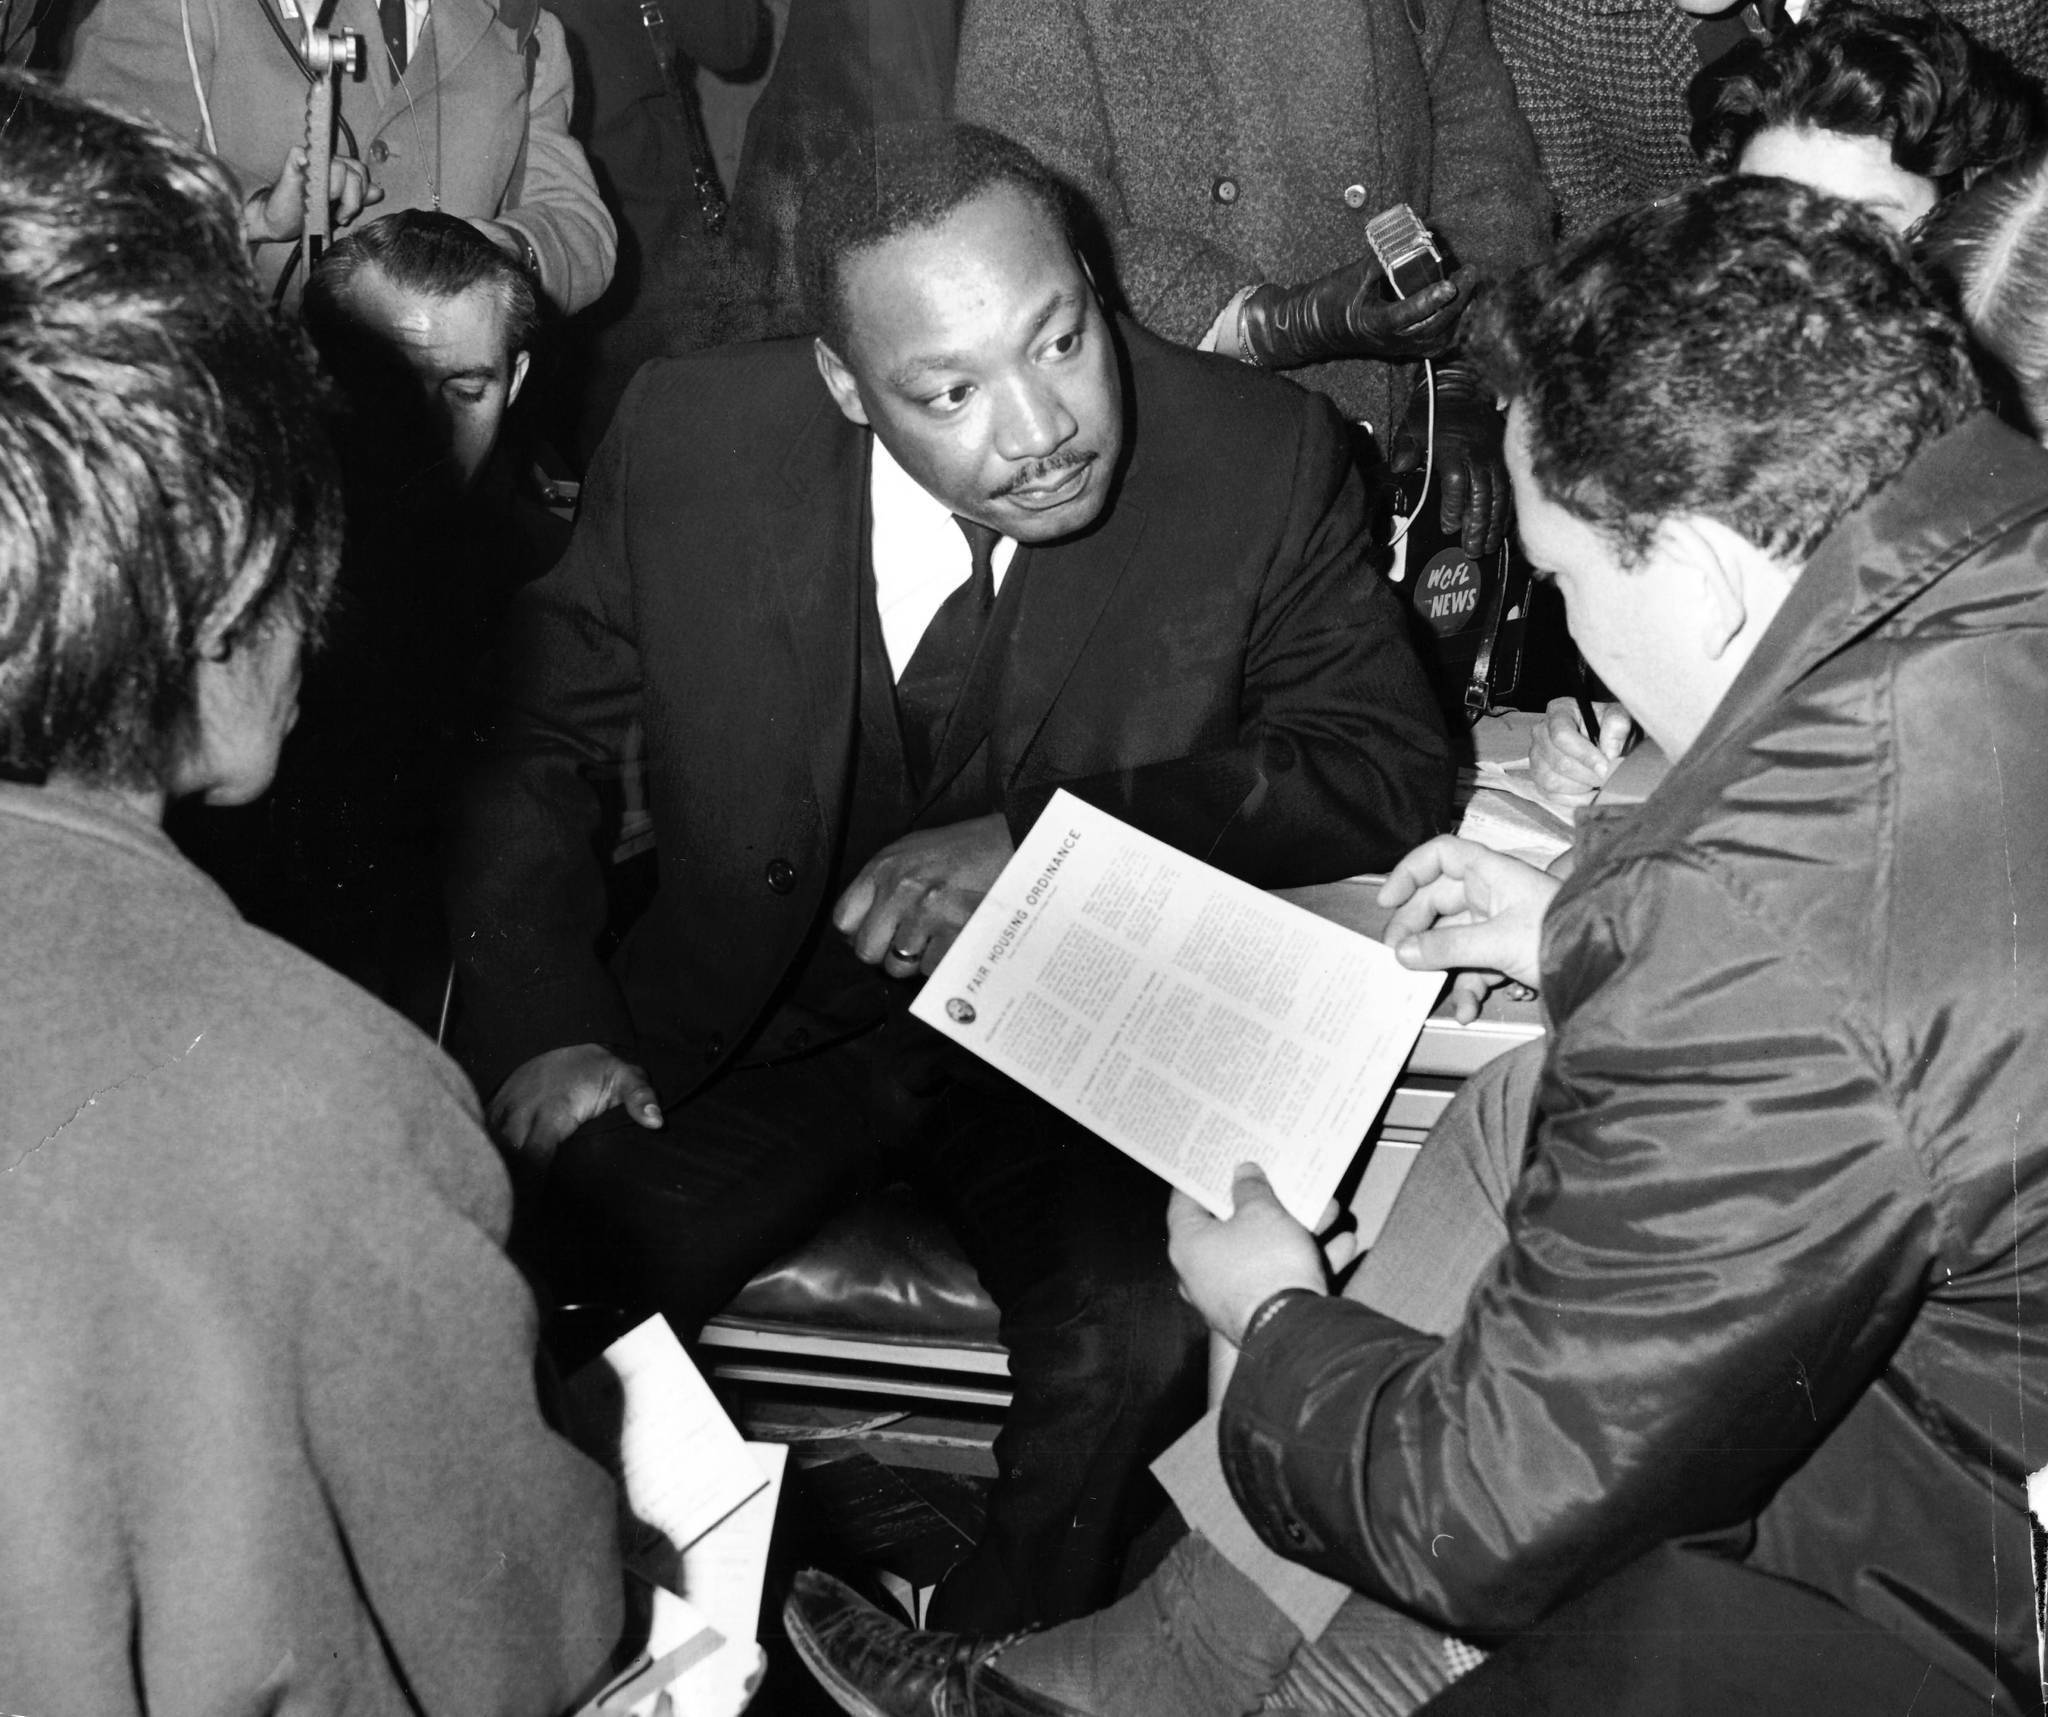 50 Years Ago Mlk Jr S Speech At Soldier Field March To City Hall